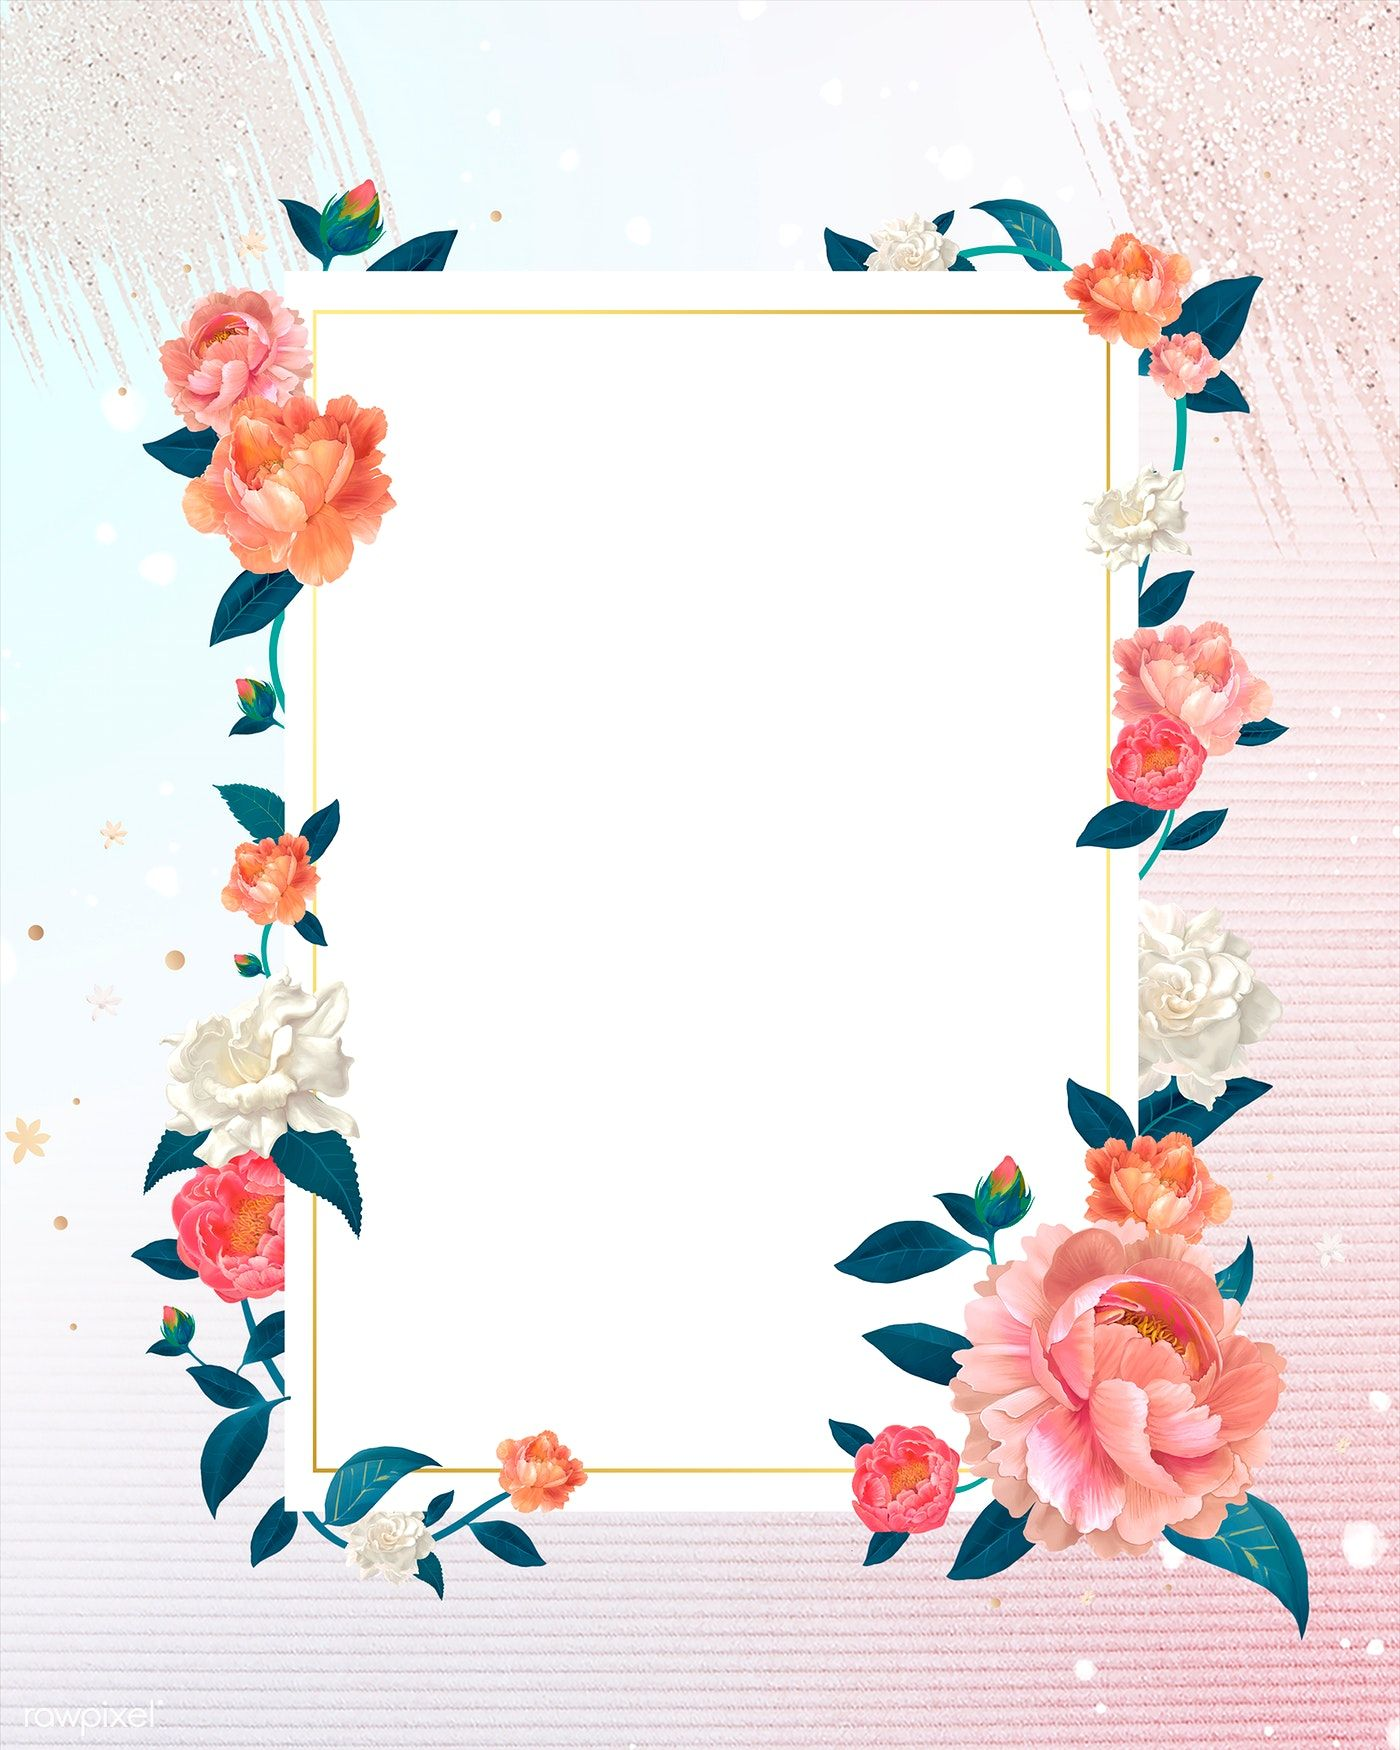 Download Premium Illustration Of Blank White Floral Card Template Floral Cards Flower Illustration Blue Background Wallpapers